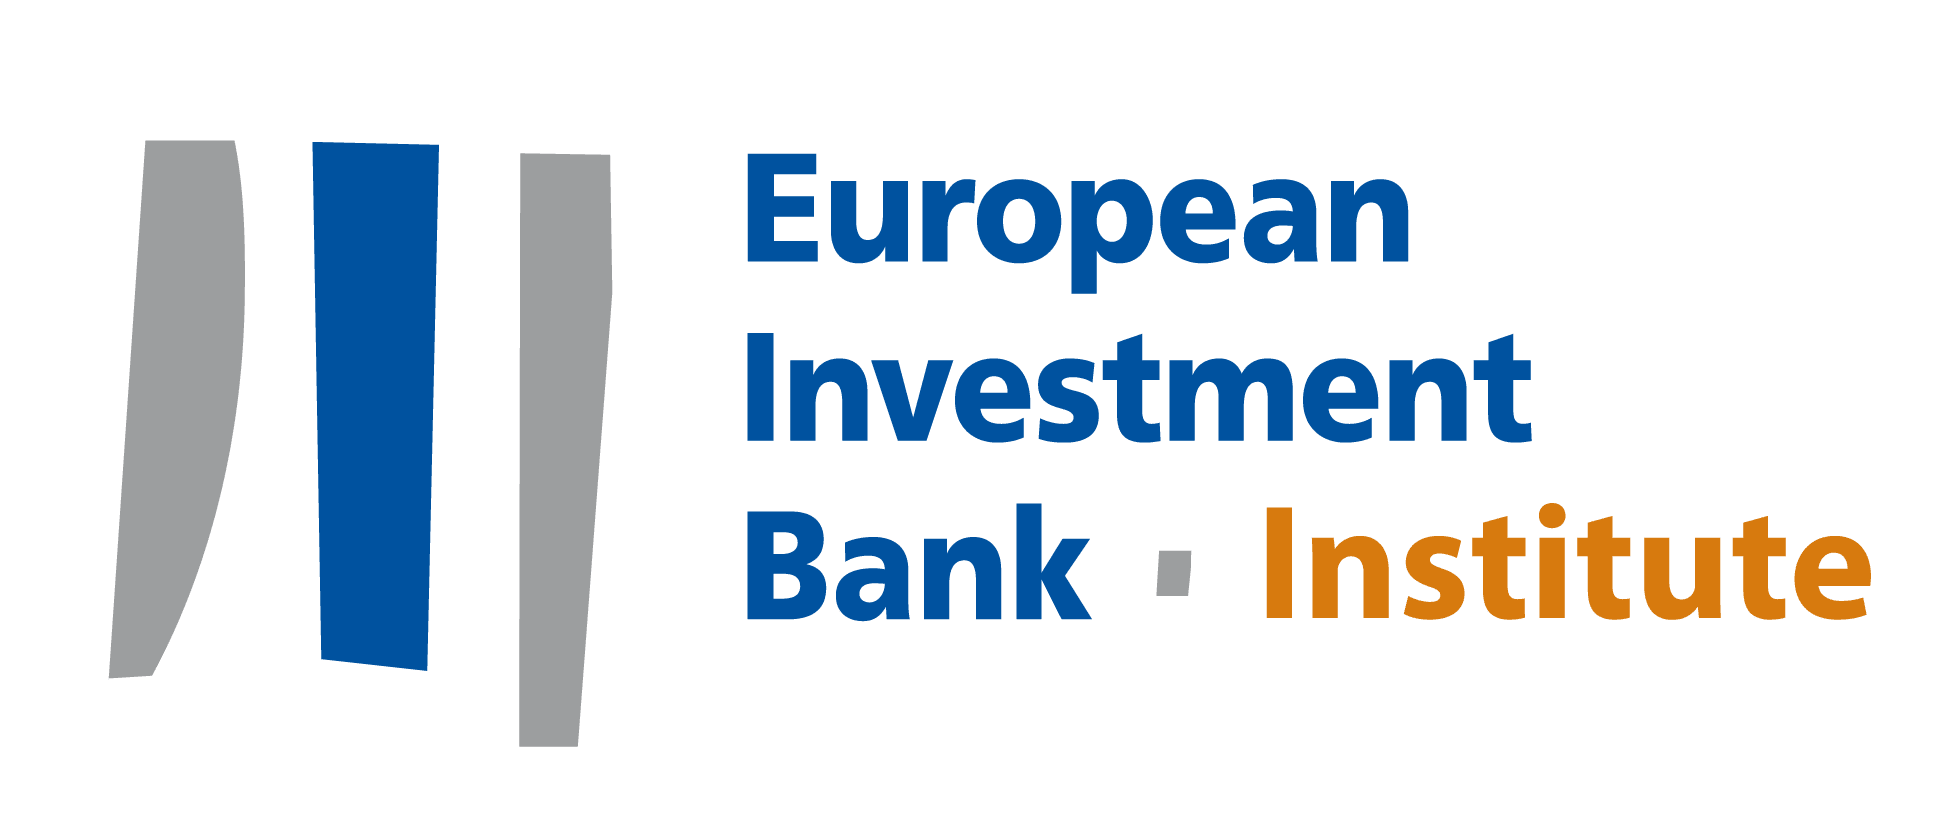 European Investment Bank Institute